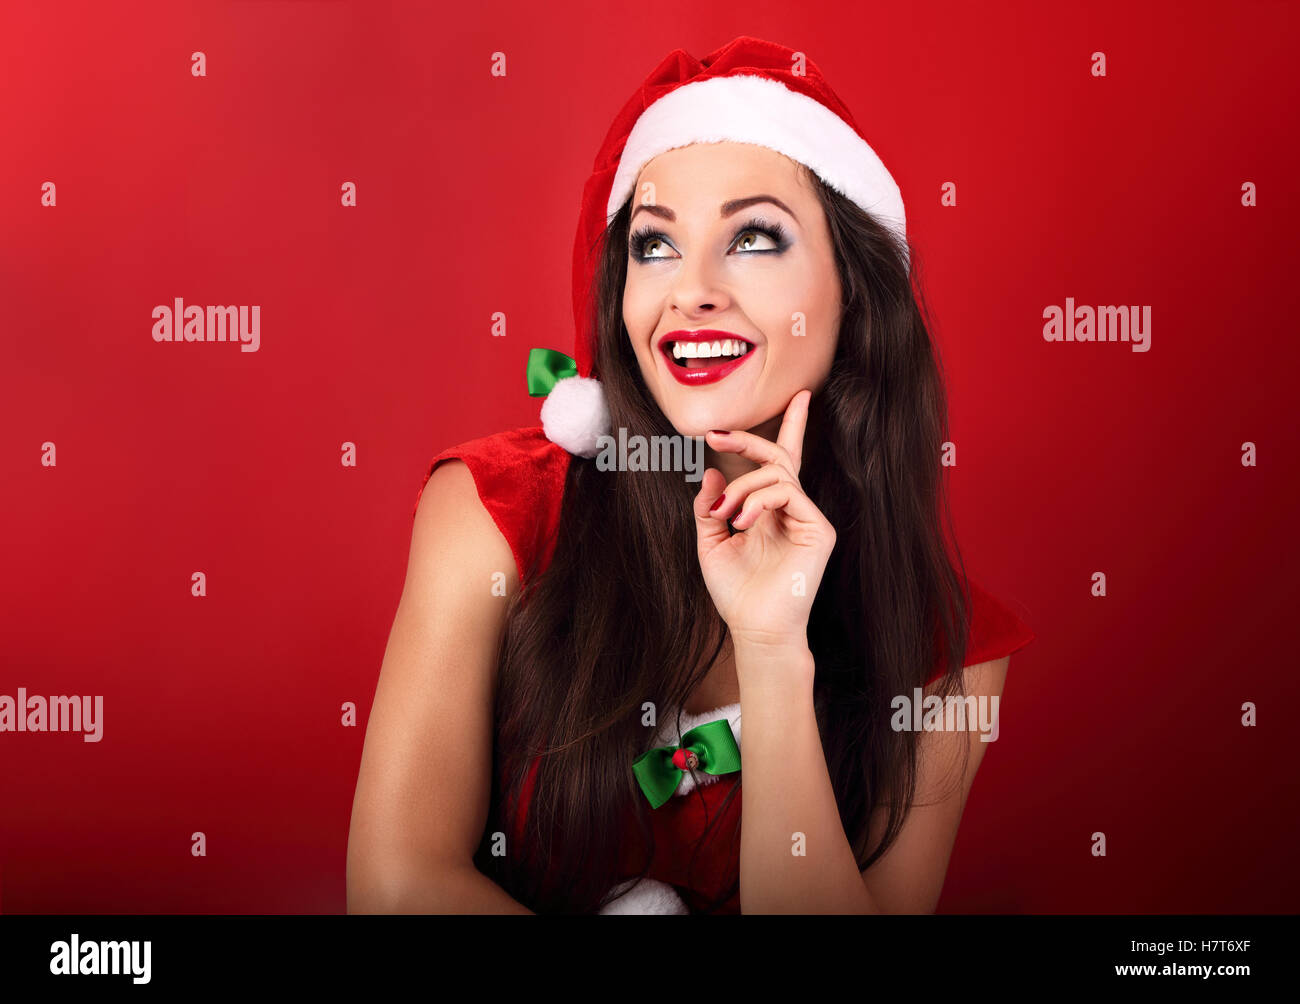 f9ce6a00beb65 Happy excited happy woman in santa claus christmas costume looking up on  red background with empty copy space.